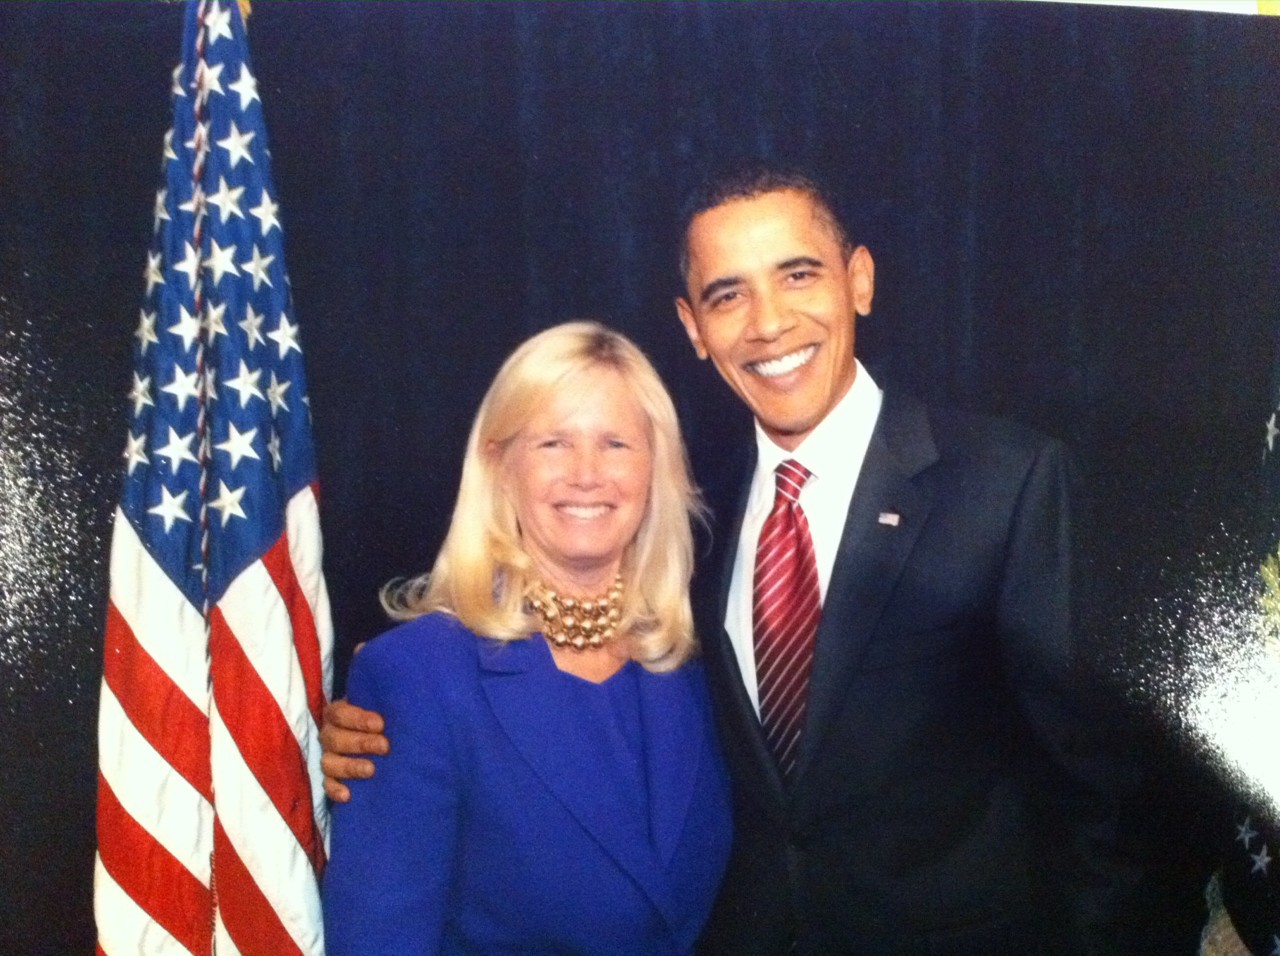 Susan-Blumenthal-with-President-Barack-Obama-e1324733826755